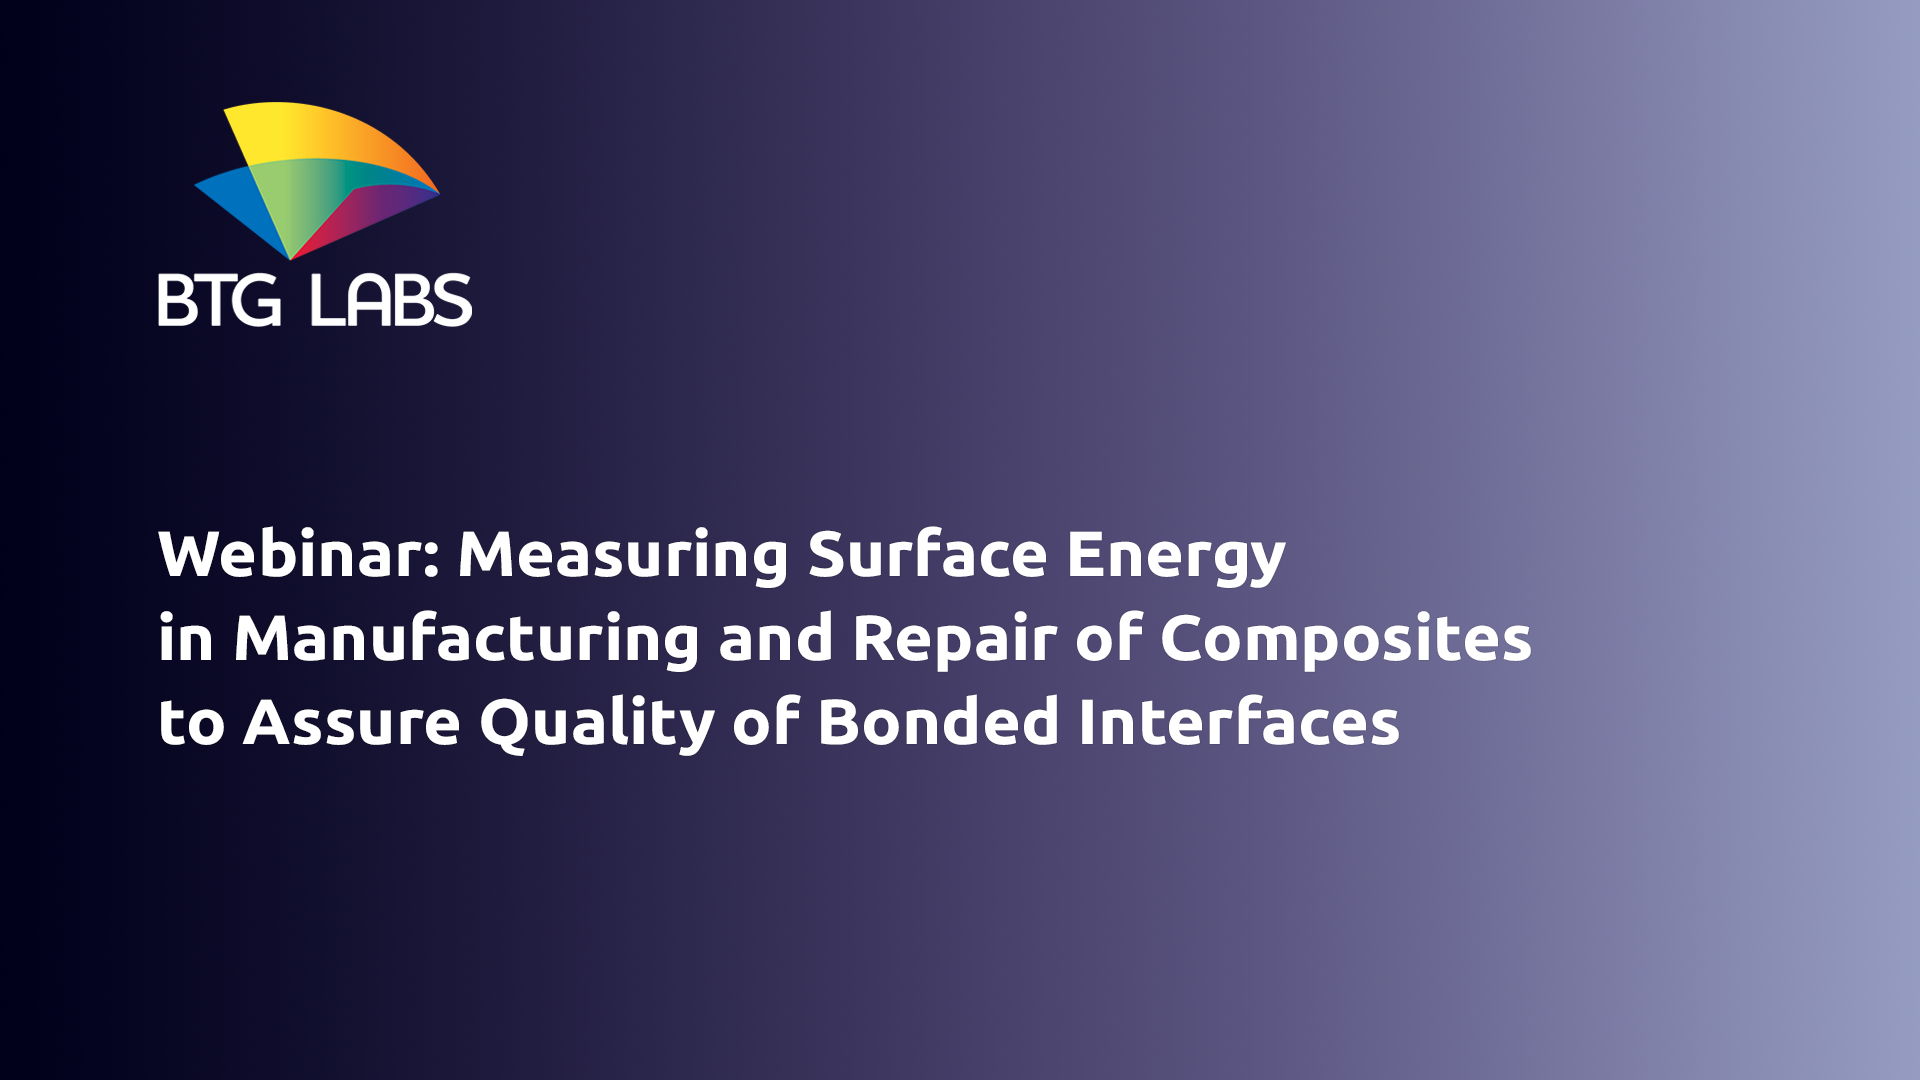 measuring-surface-energy-in-manufacturing-and-repair-of-composites-to-assure-quality-of-bonded-interfaces